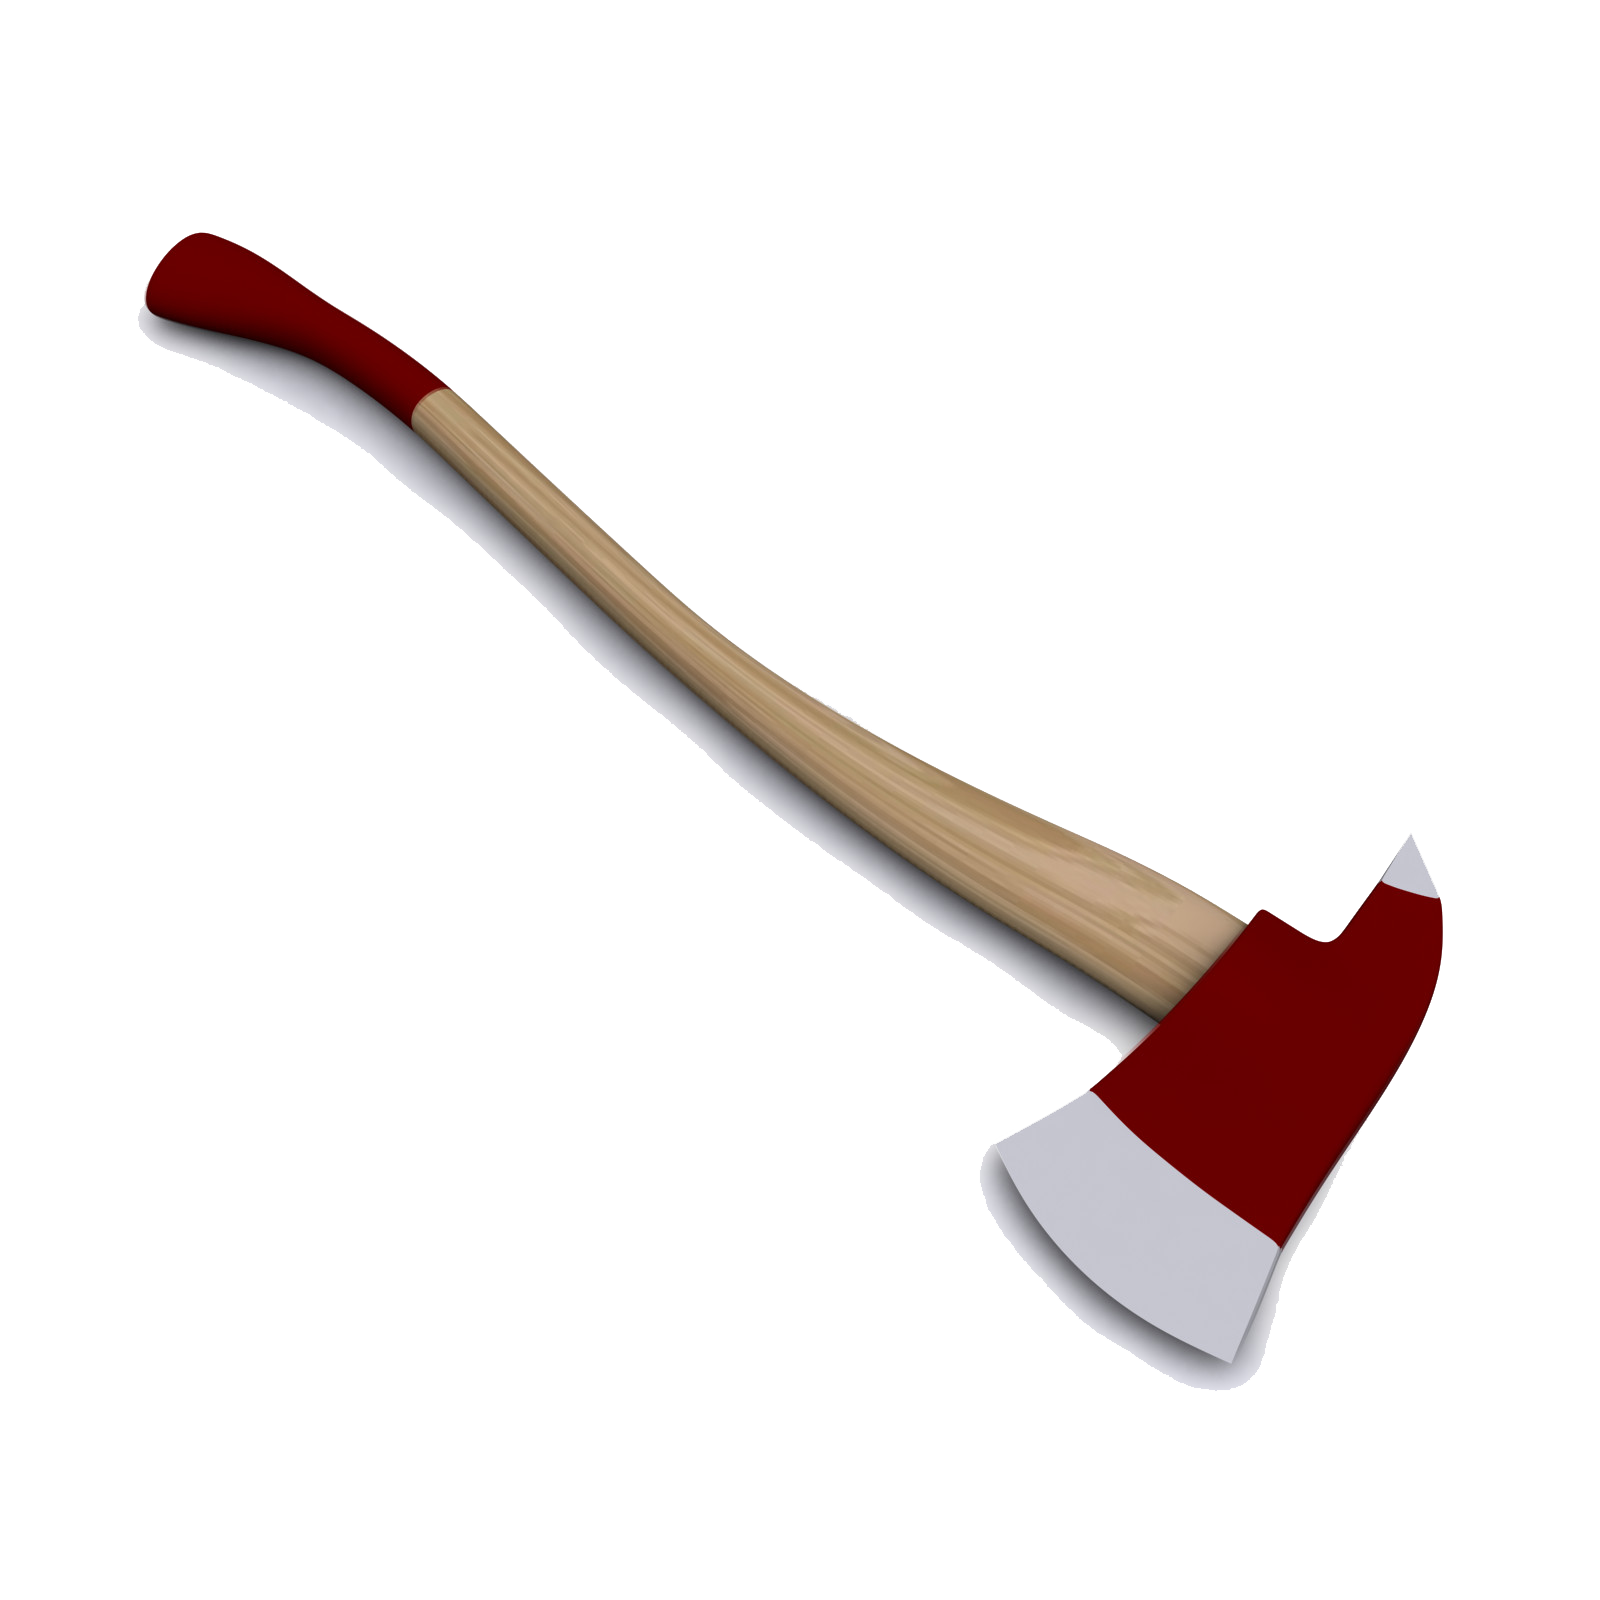 Clipart fire axe. Firefighter png pic mart